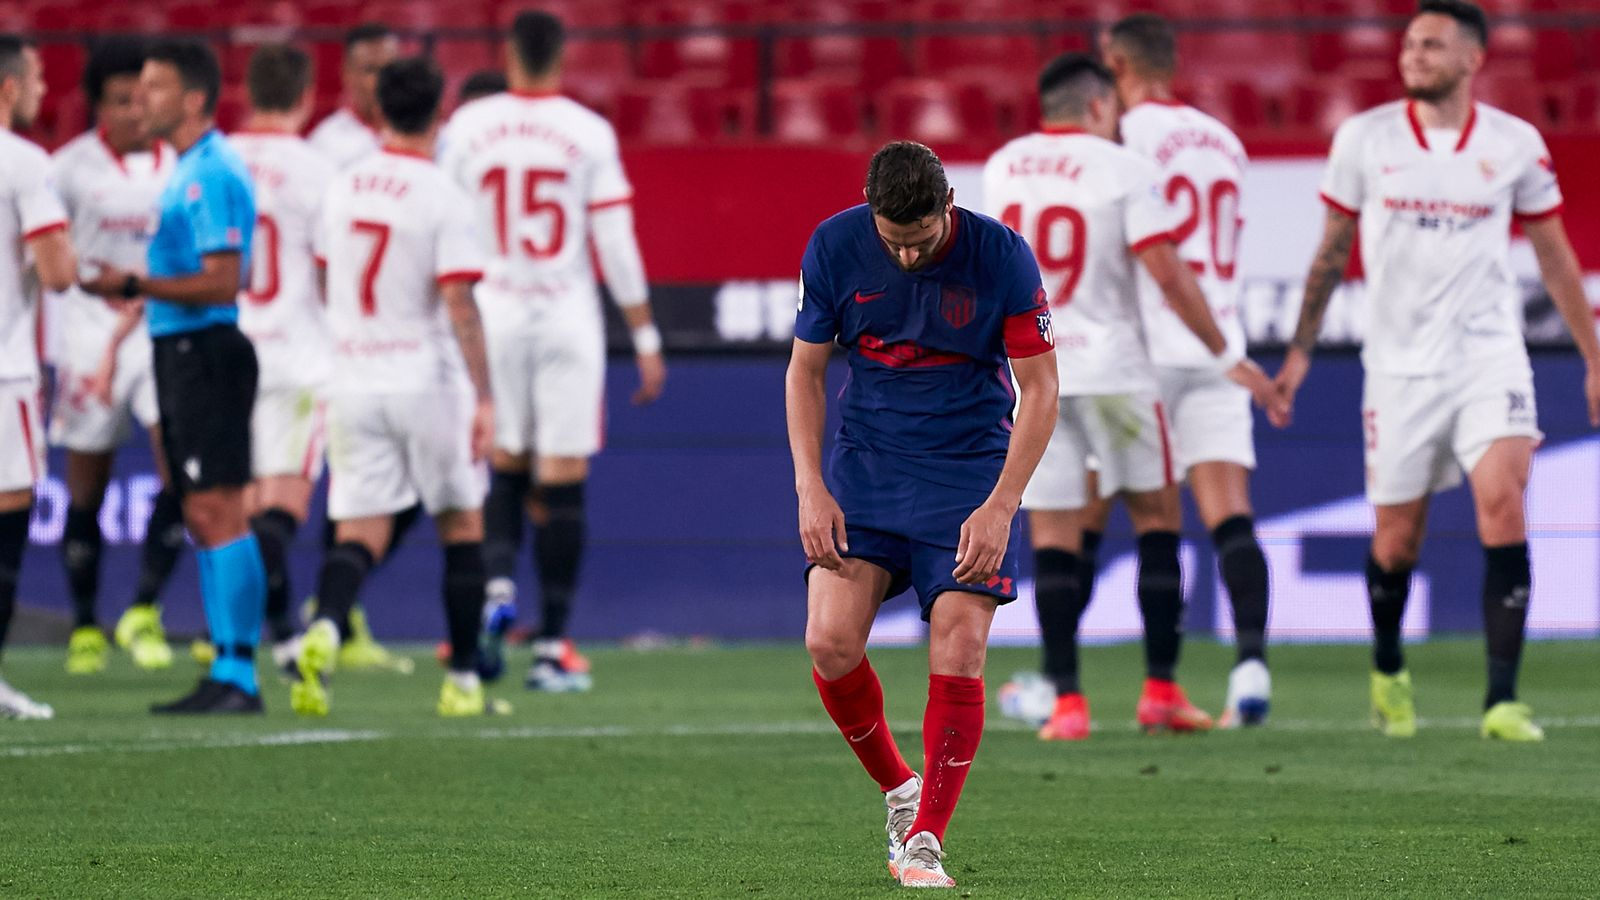 Atletico Madrid lose at Sevilla to hand Real and Barcelona lifeline - European football round-up